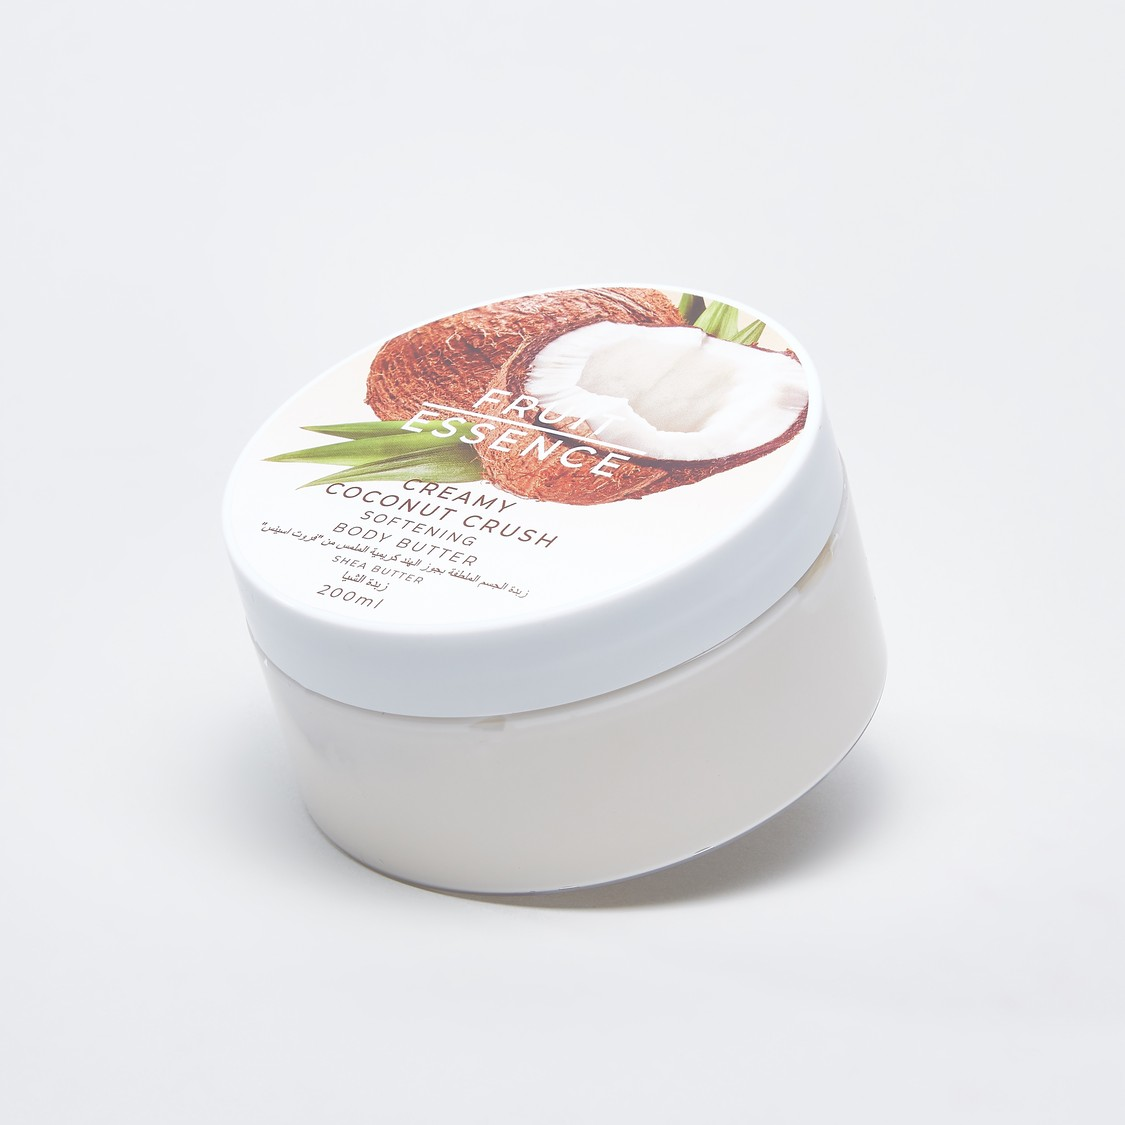 Fruit Essence Creamy Coconut Crush Softening Body Butter - 200 ml